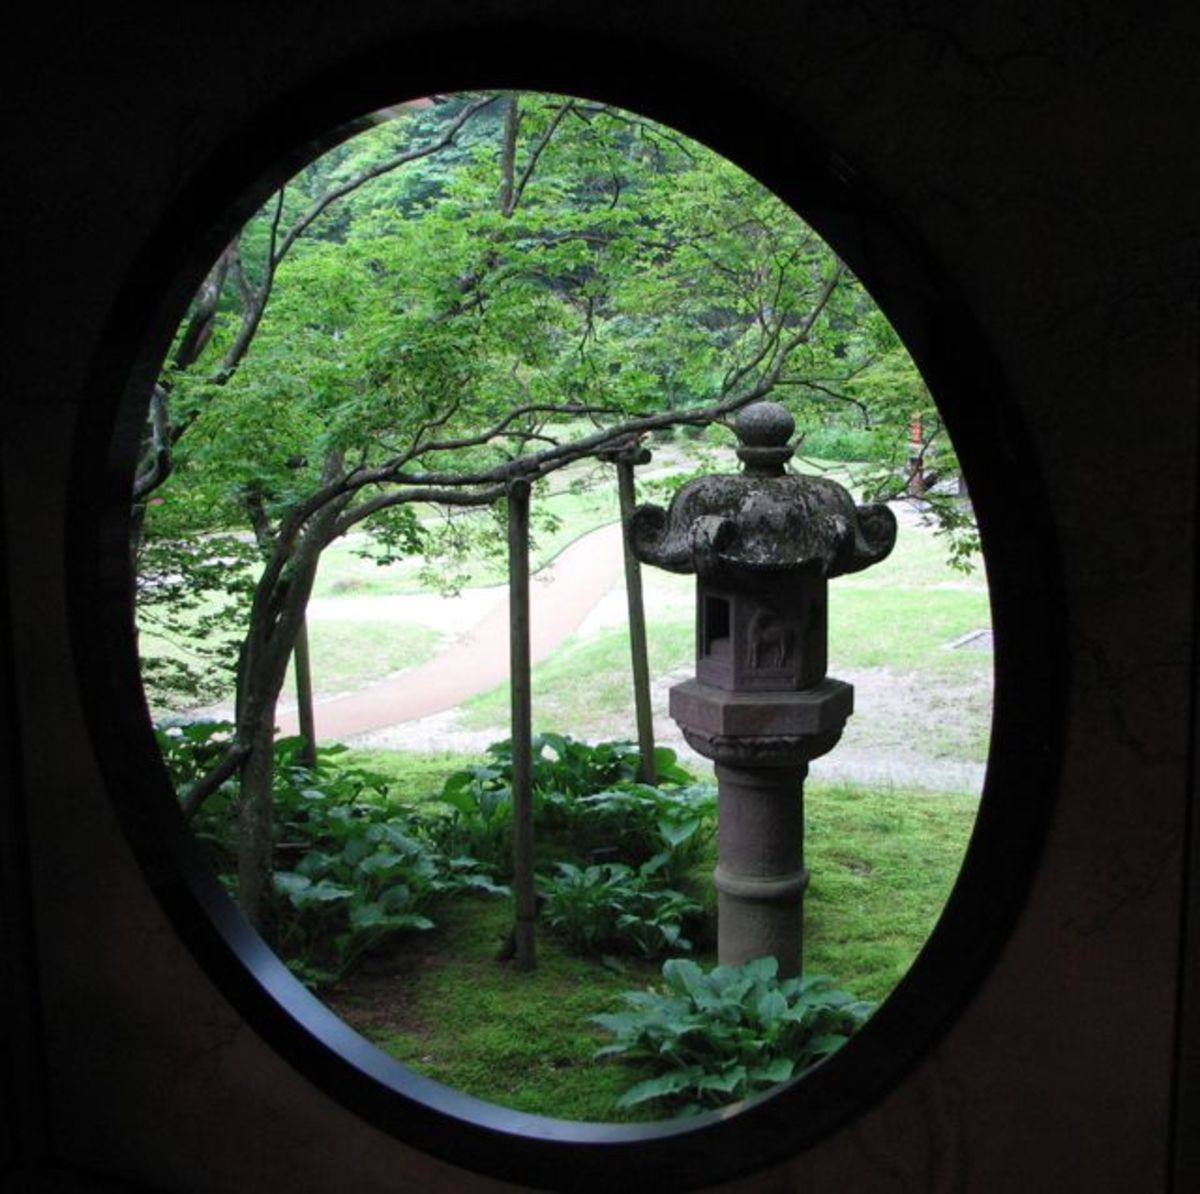 Through a window of Tamozawa villa.